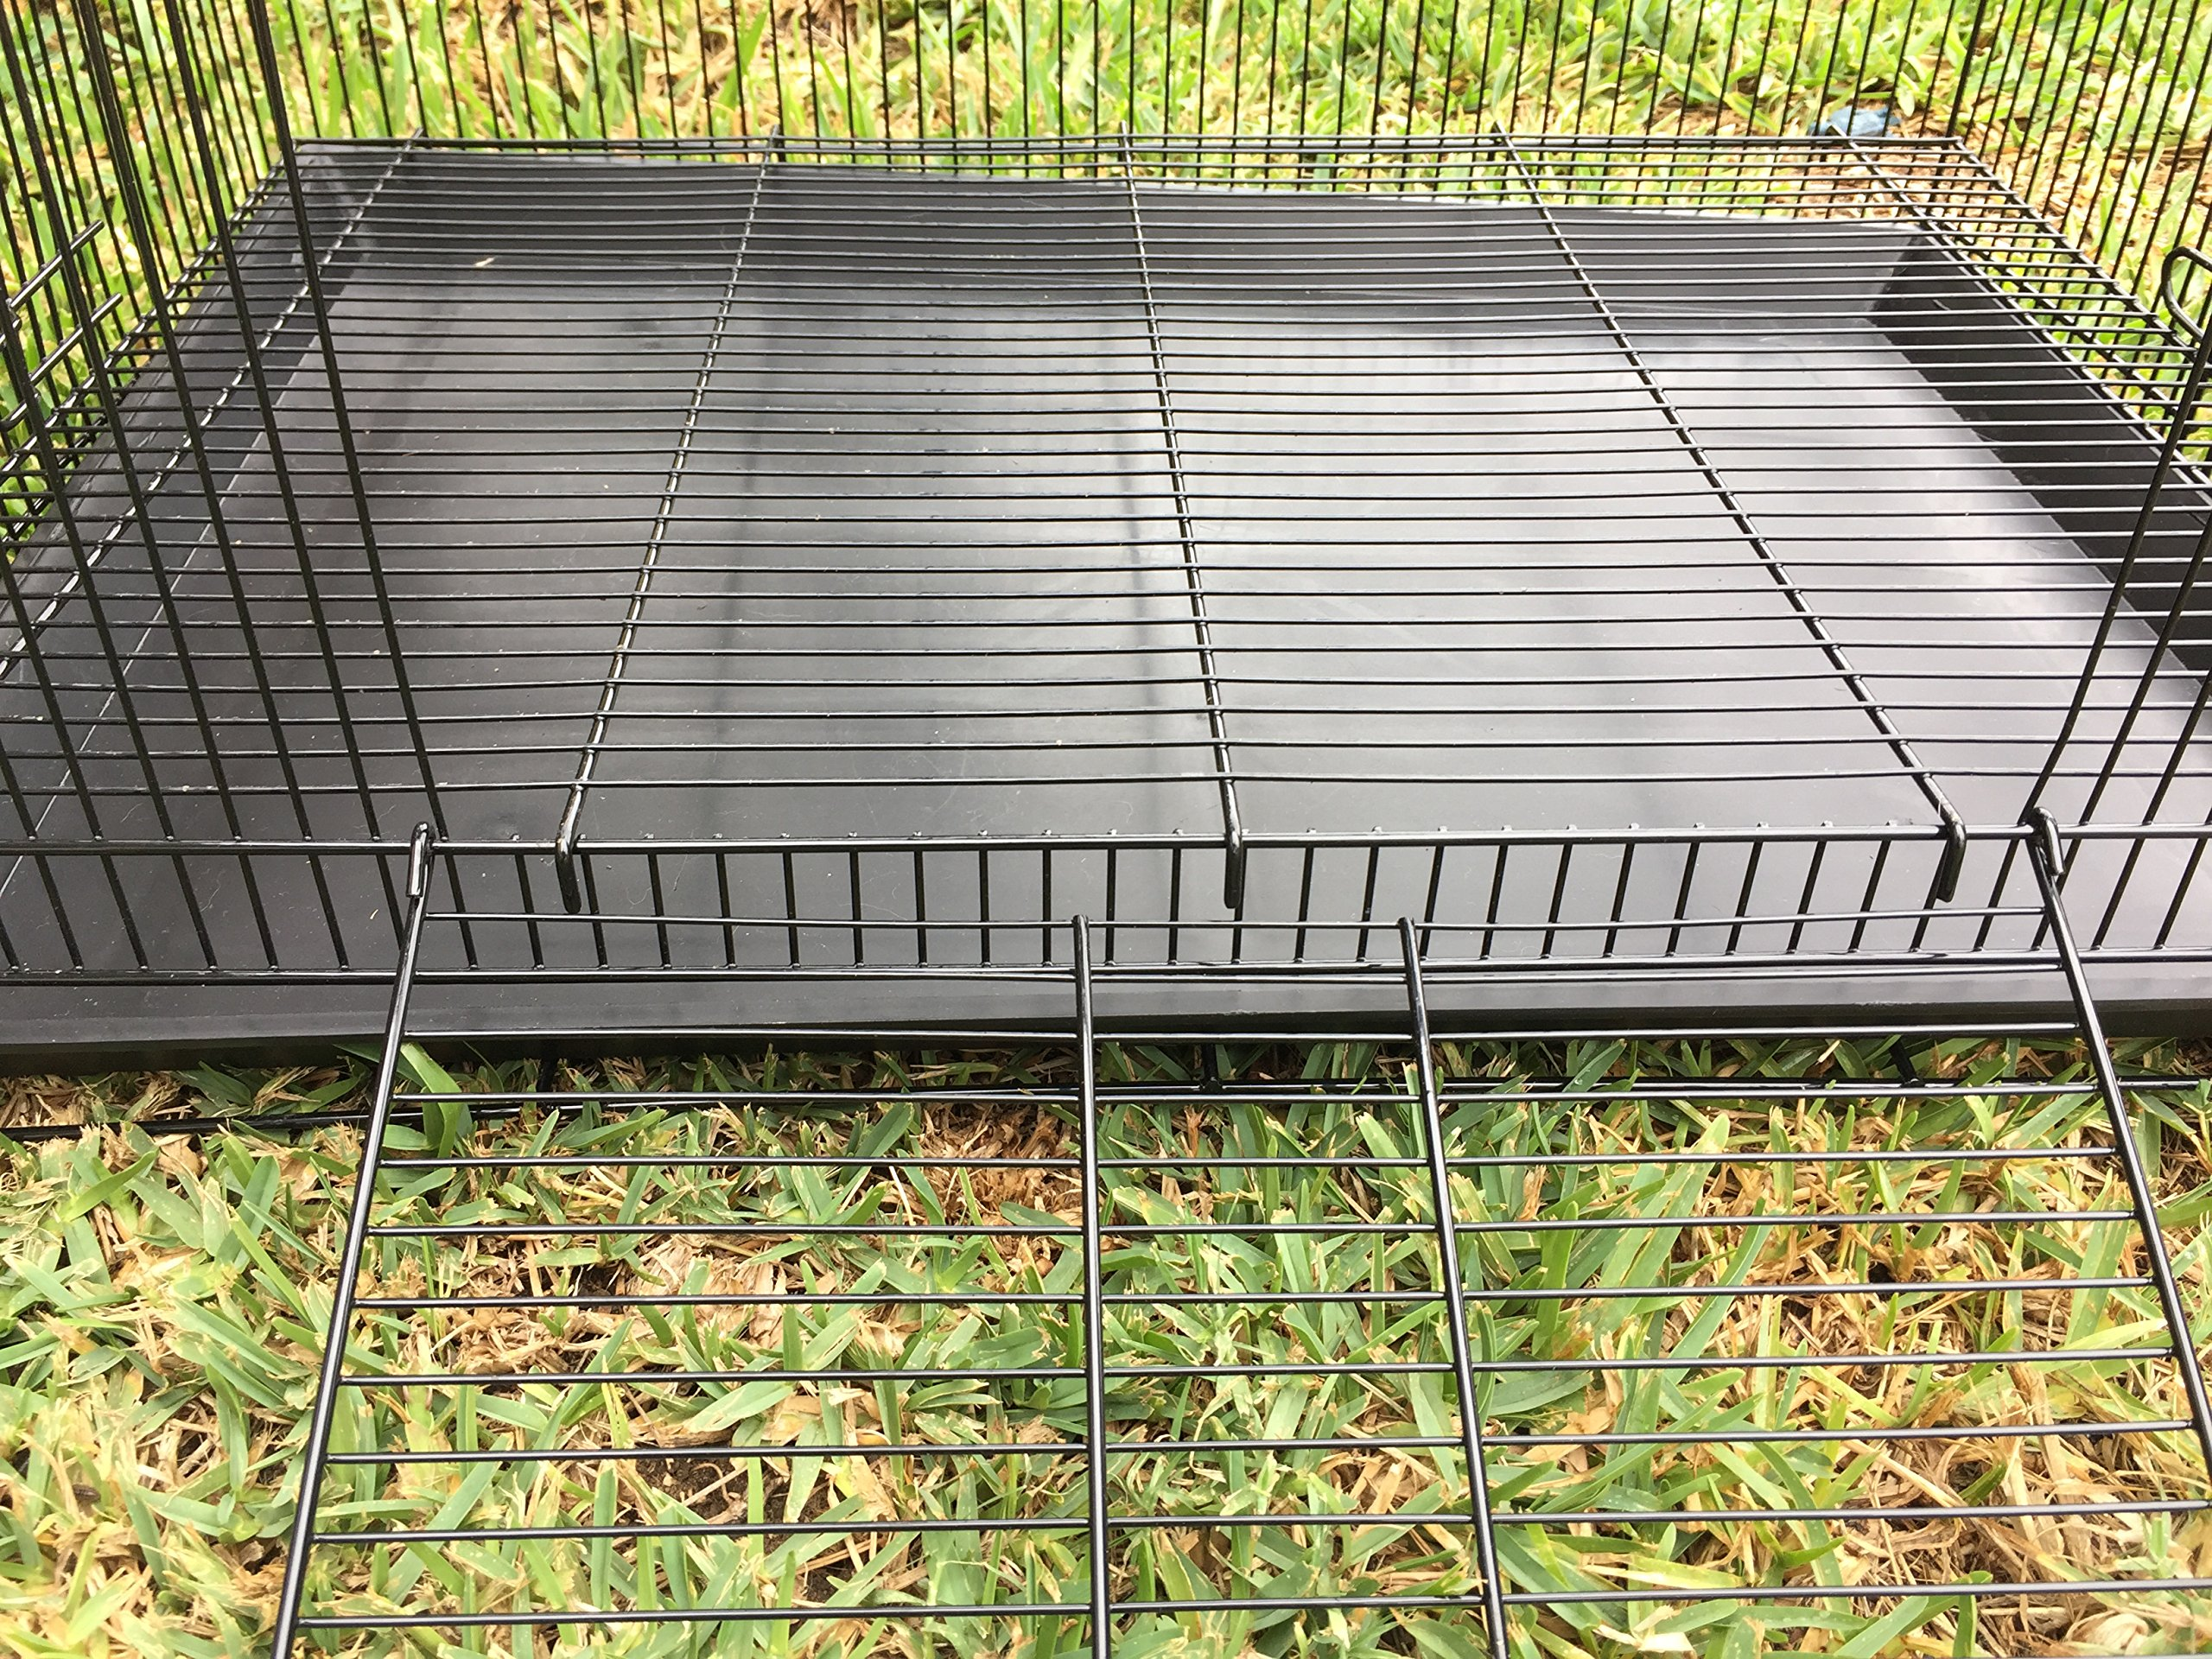 New Medium 3 Levels Ferret Chinchilla Sugar Glider Cage 24'' Length x 16'' Depth x 24'' Height by Mcage (Image #7)